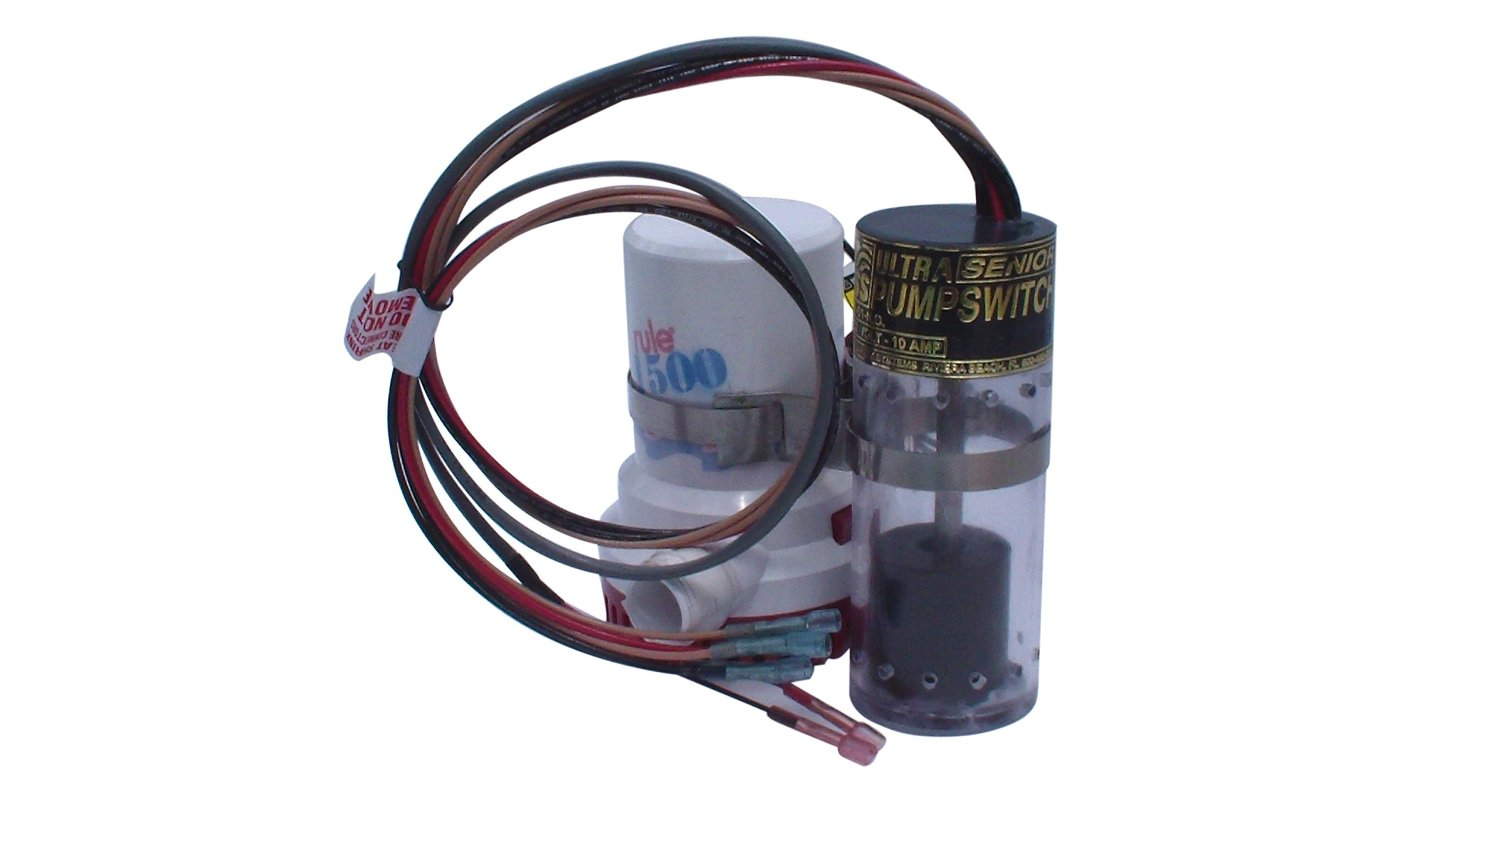 Cheap Float Switches For Bilge Pumps Find Large Wiring Diagram Get Quotations Keep Your Boat Afloat With Uss Pump Switch Sr 12 Volt W